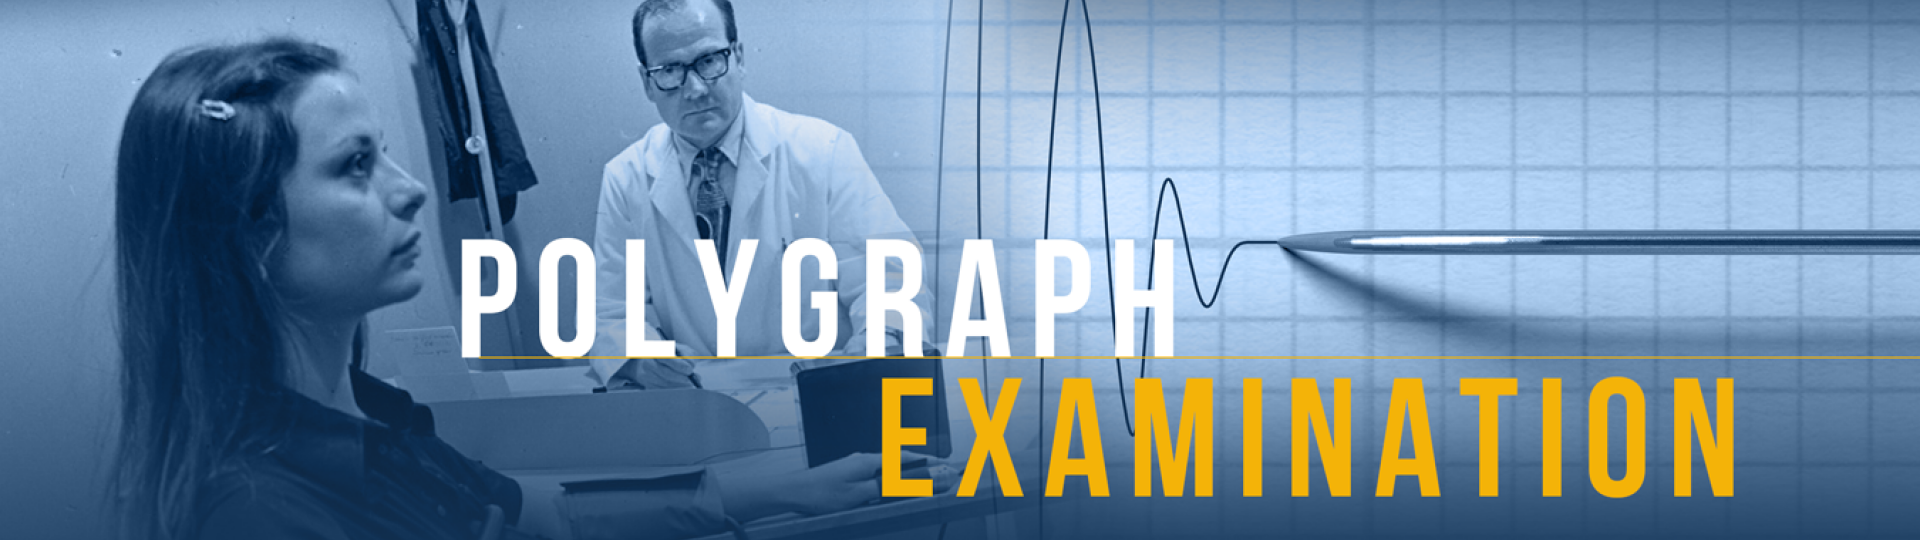 Polygraph examiner administering a poly